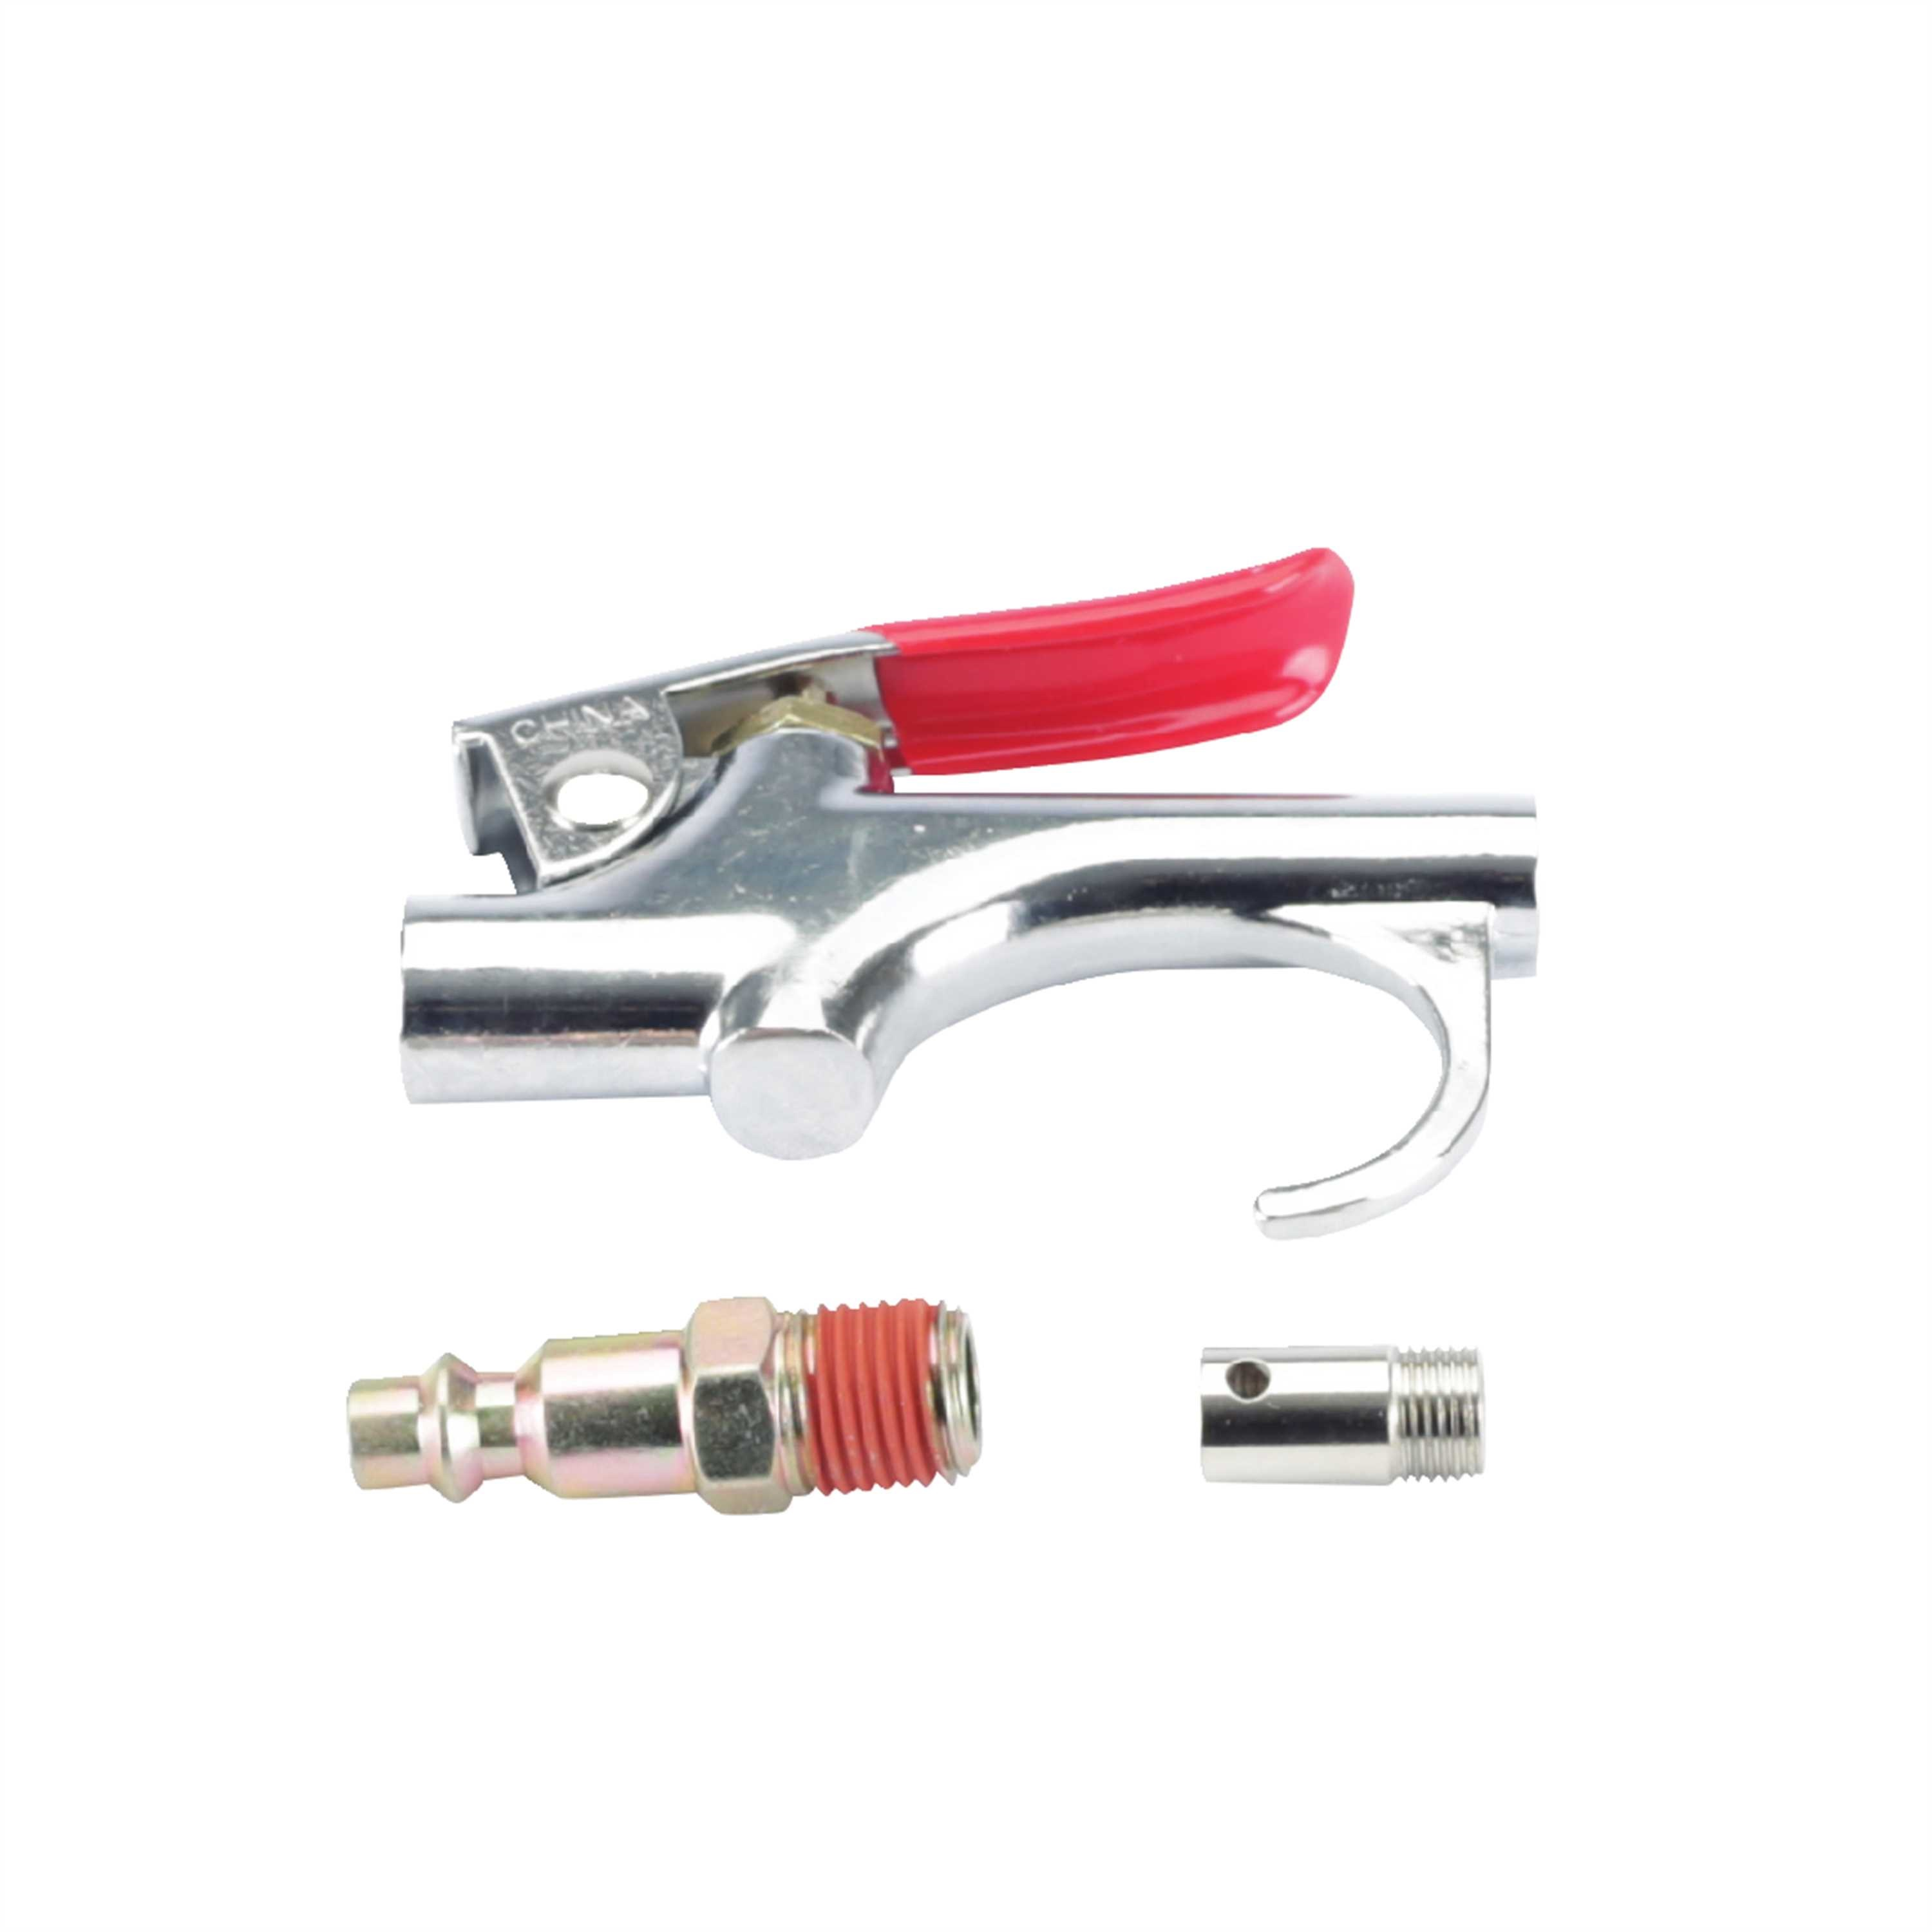 Bostitch - Safety Blow Gun  14 NPT Female Thread - BTFP72330